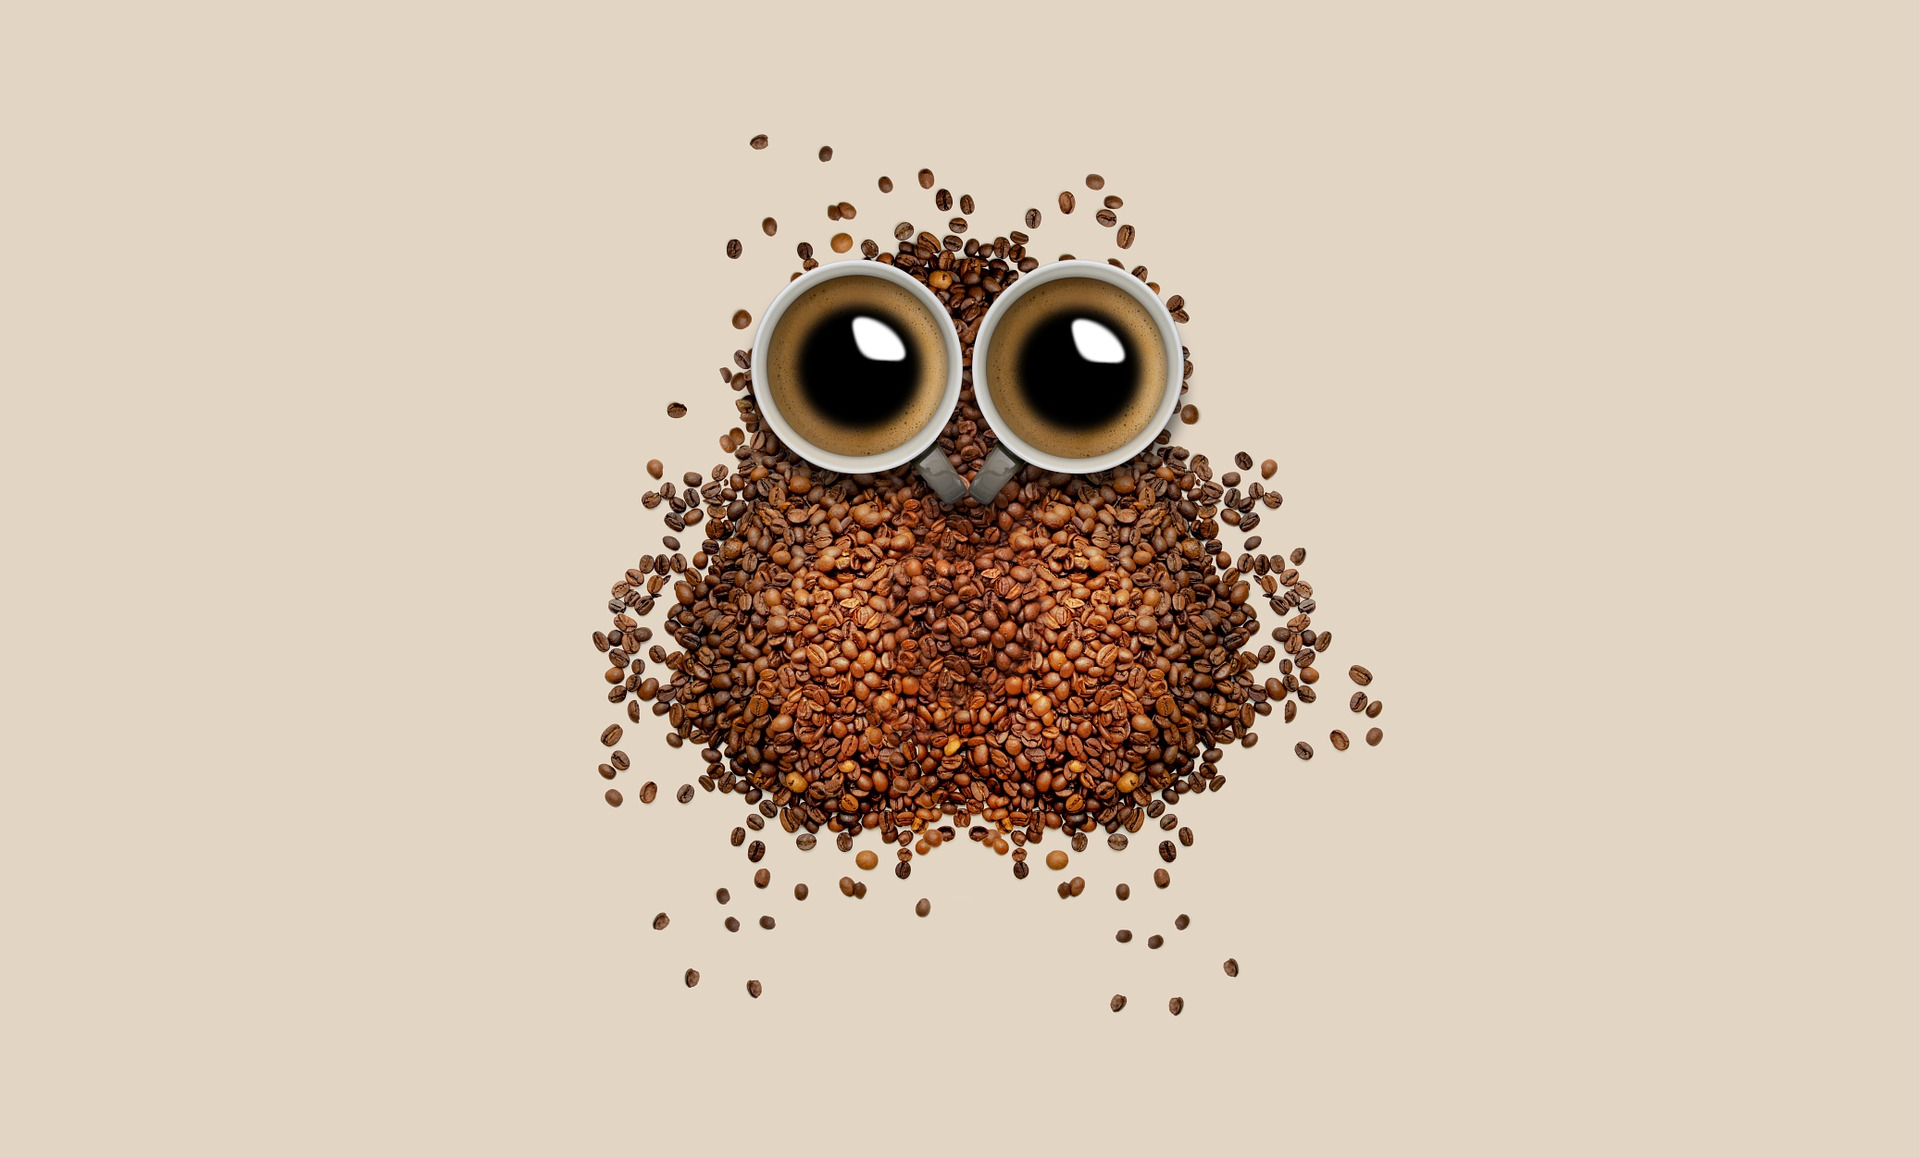 café, HIBOU, Coupe, grains de café, yeux, Brown - Fonds d'ecran - Professor-falken.com